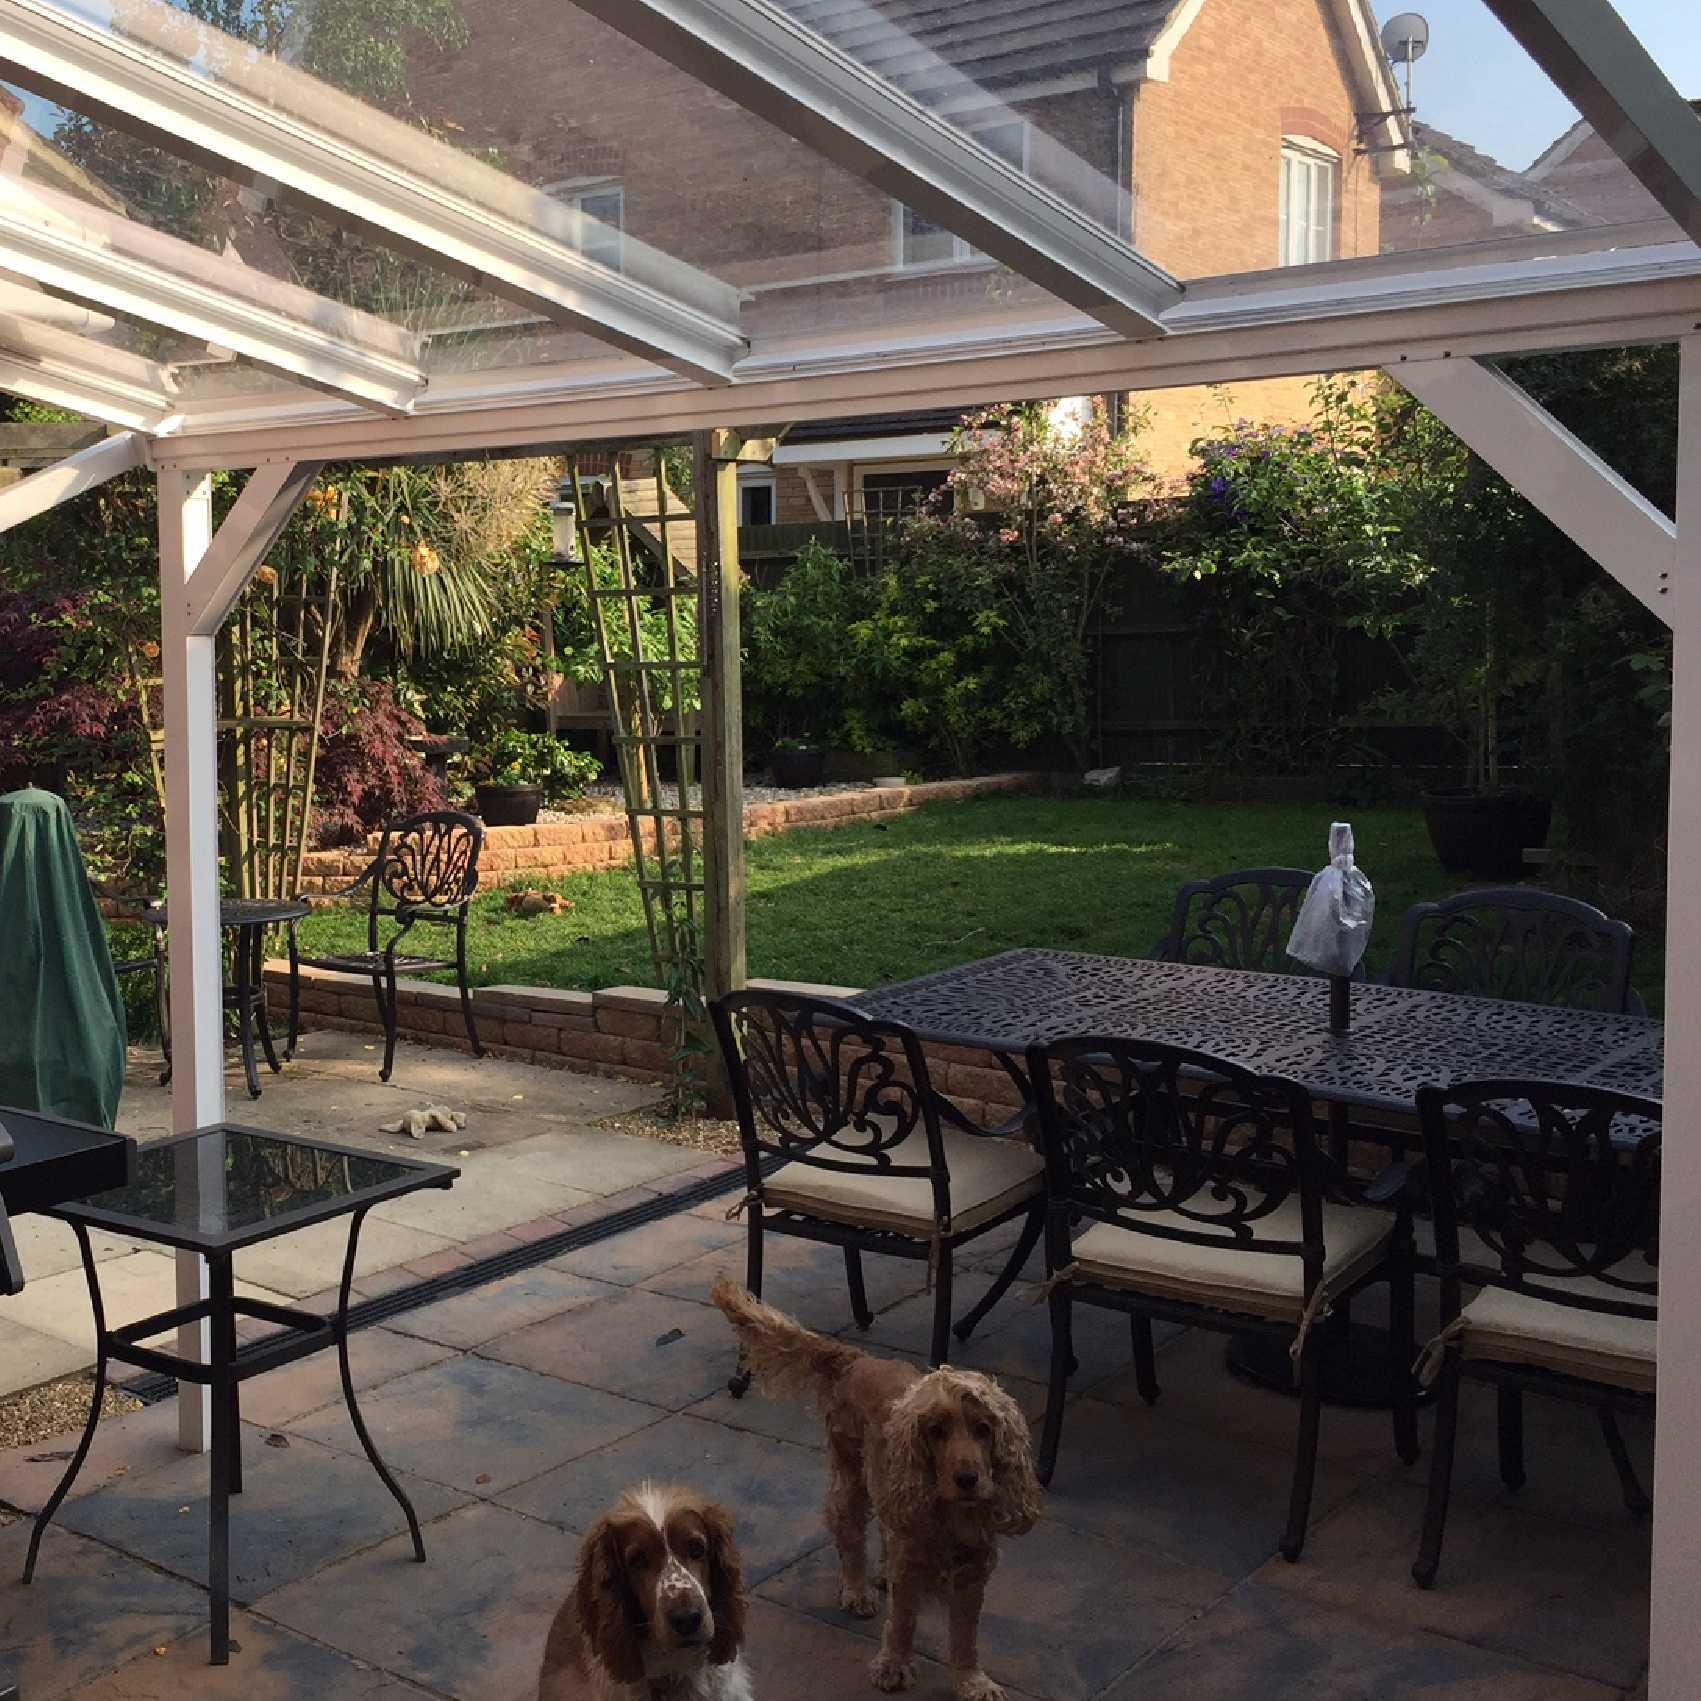 Affordable Omega Smart White Lean-To Canopy UNGLAZED for 6mm Glazing - 9.8m (W) x 1.5m (P), (5) Supporting Posts